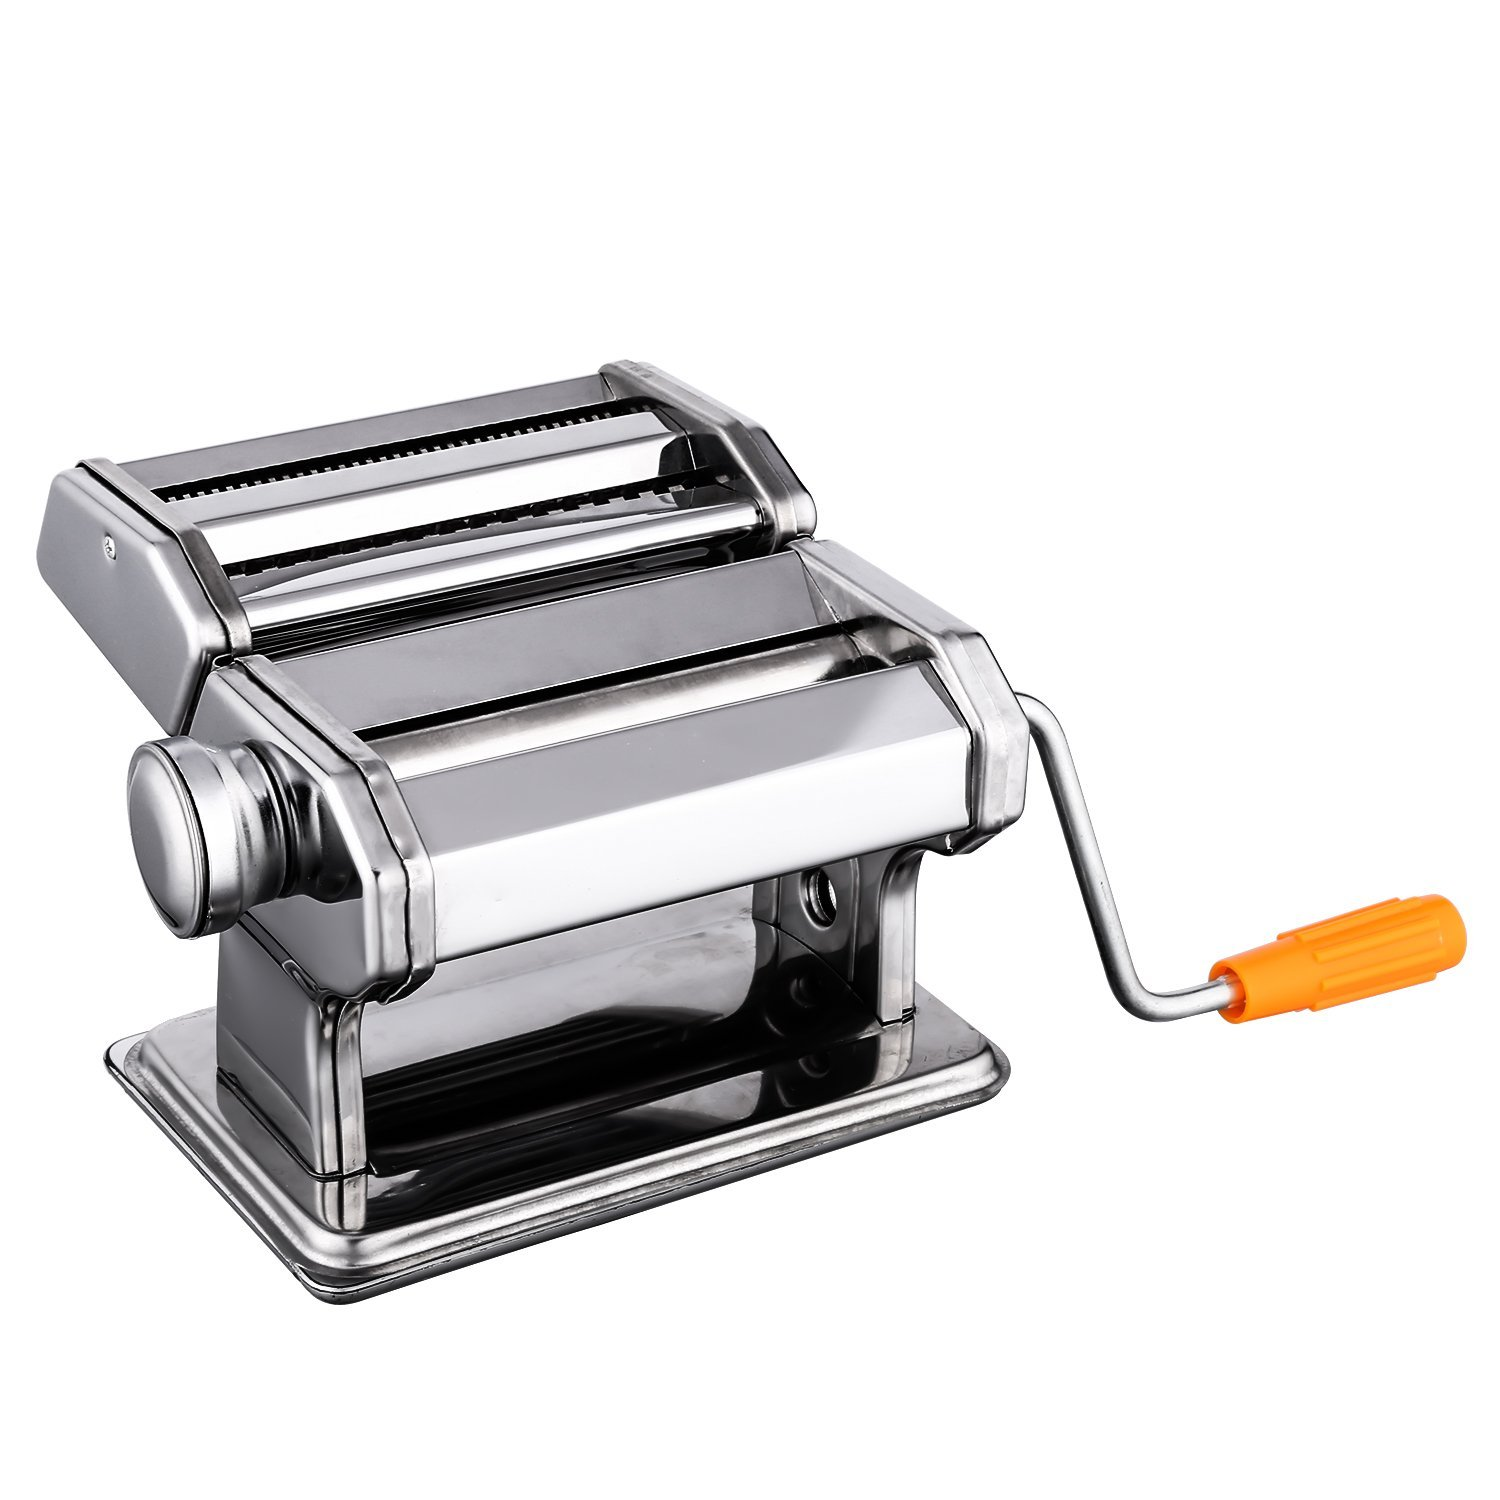 Pasta Maker Machine,Hand Crank Noodle Maker Stainless Steel Noodles Cutter with Clamp for Spaghetti Lasagna Tagliatelle (2)